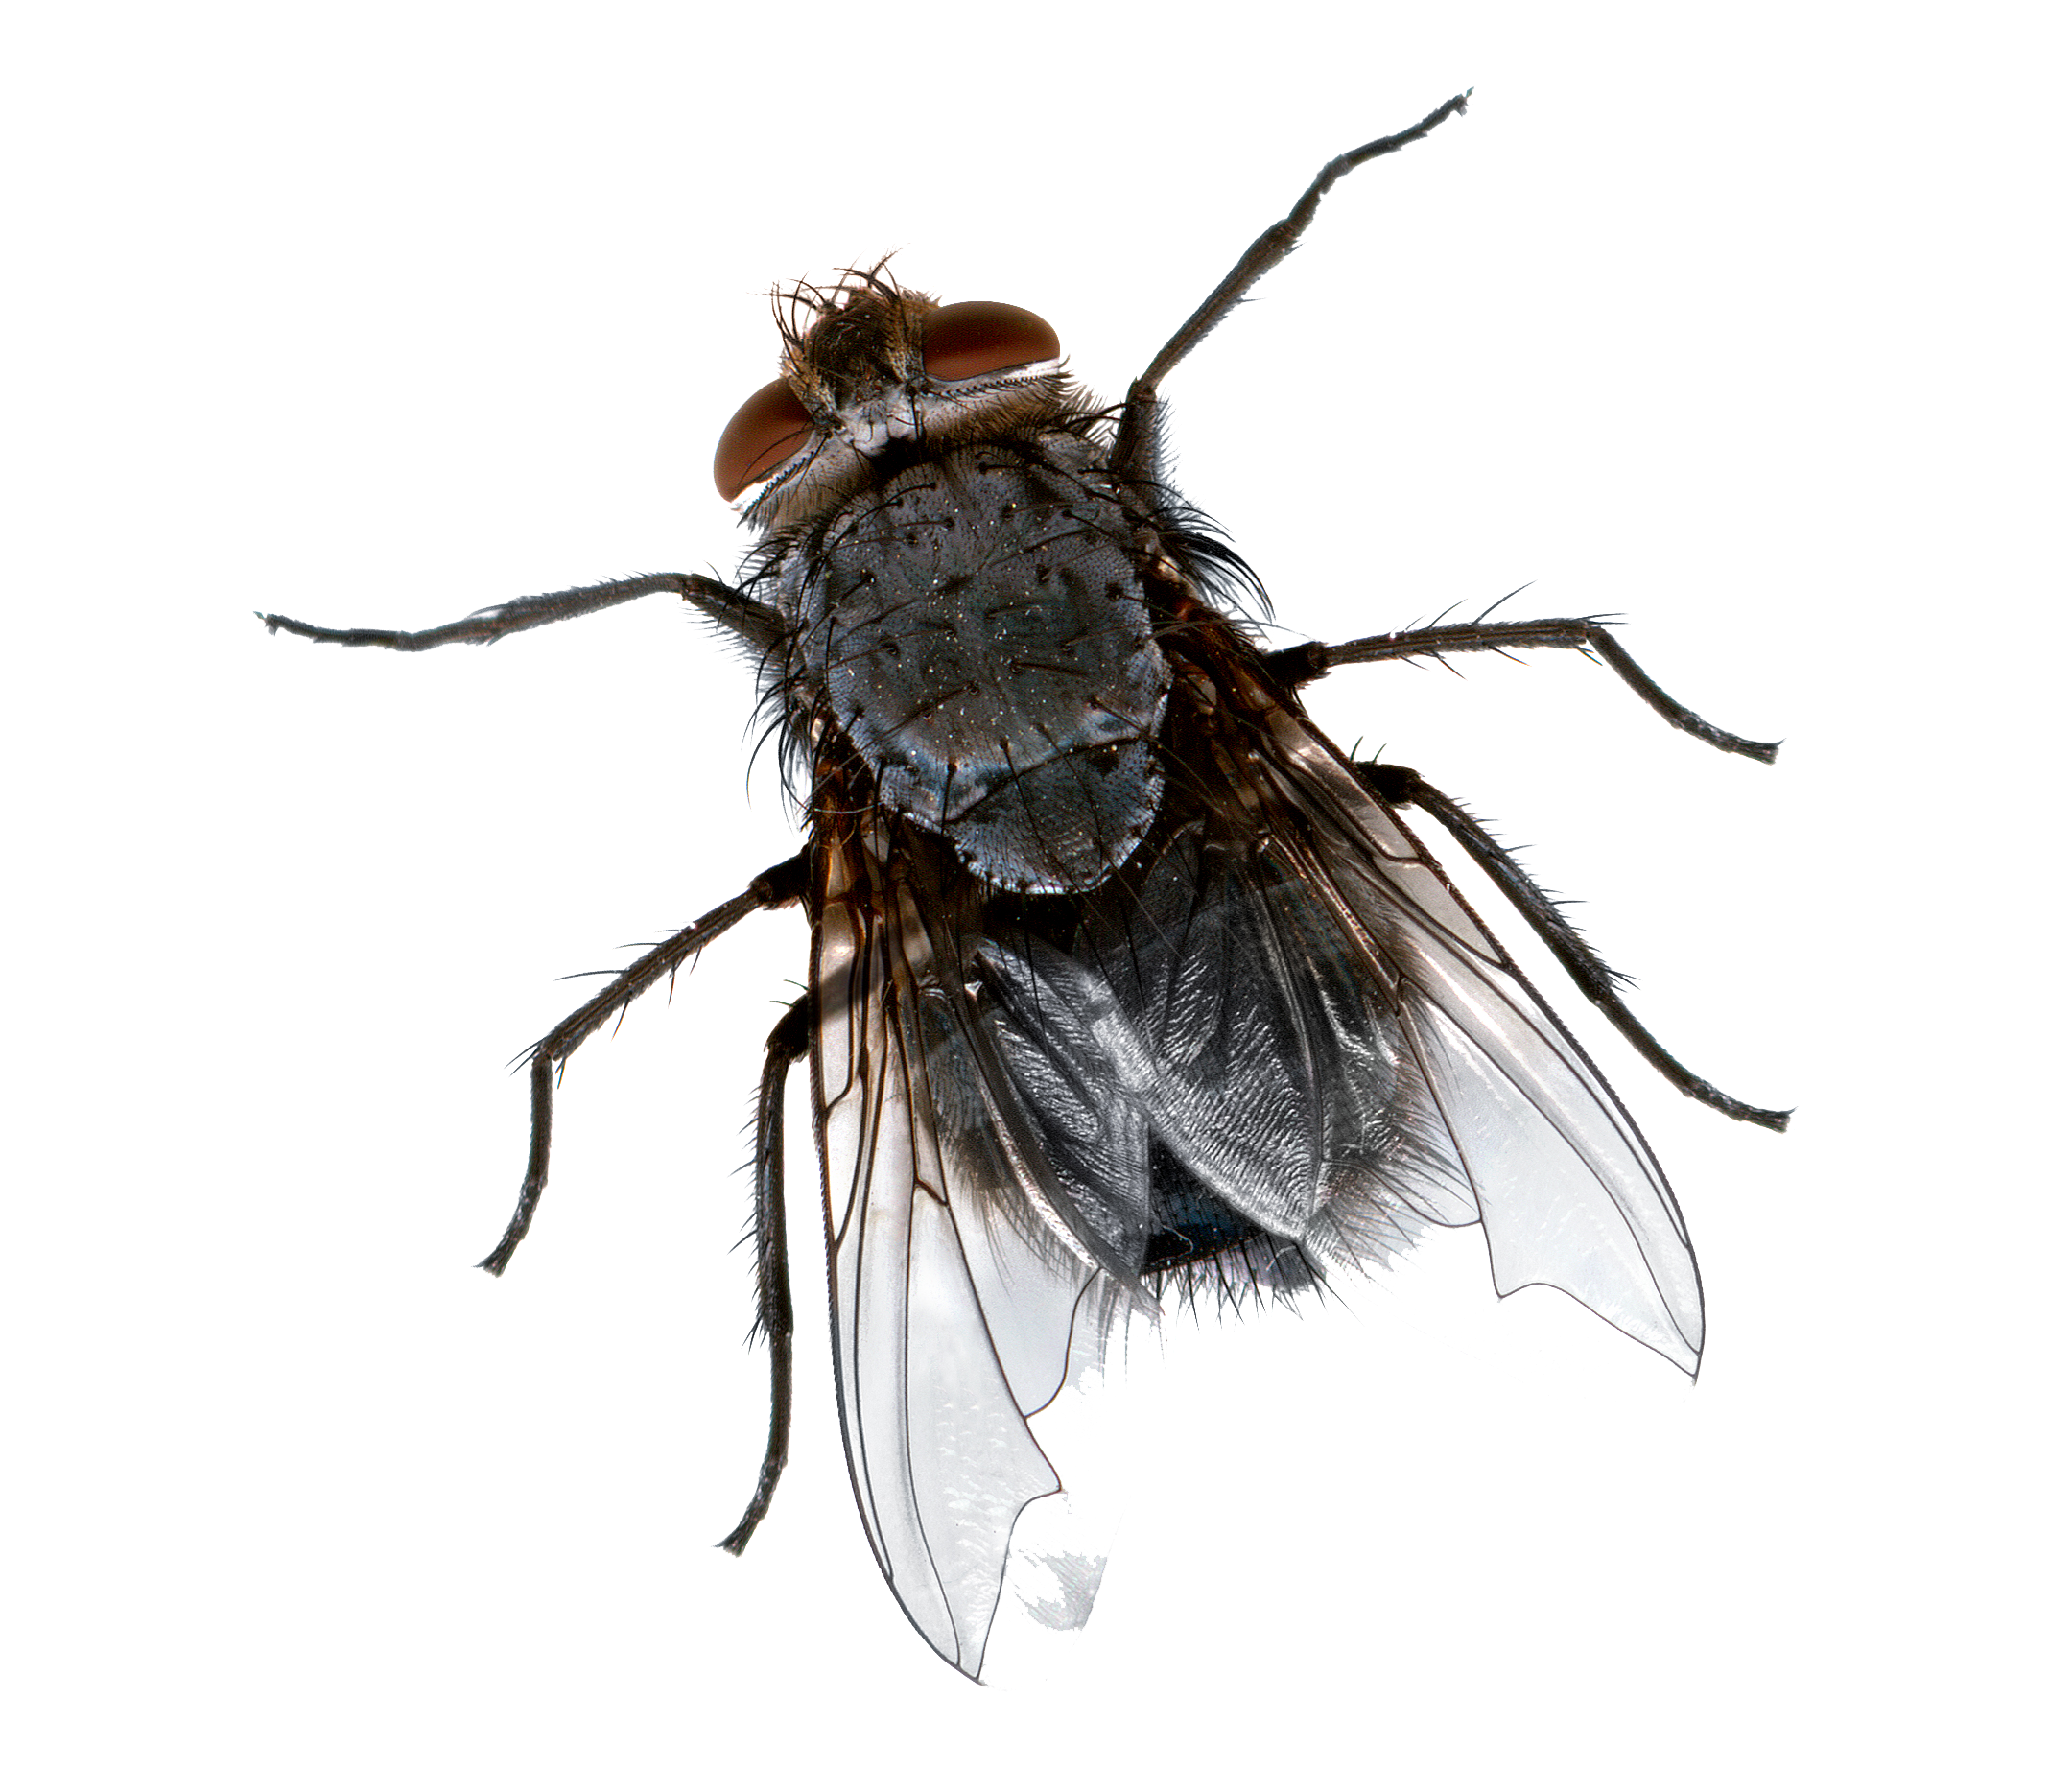 Png images transparent free. Flies clipart dead fly